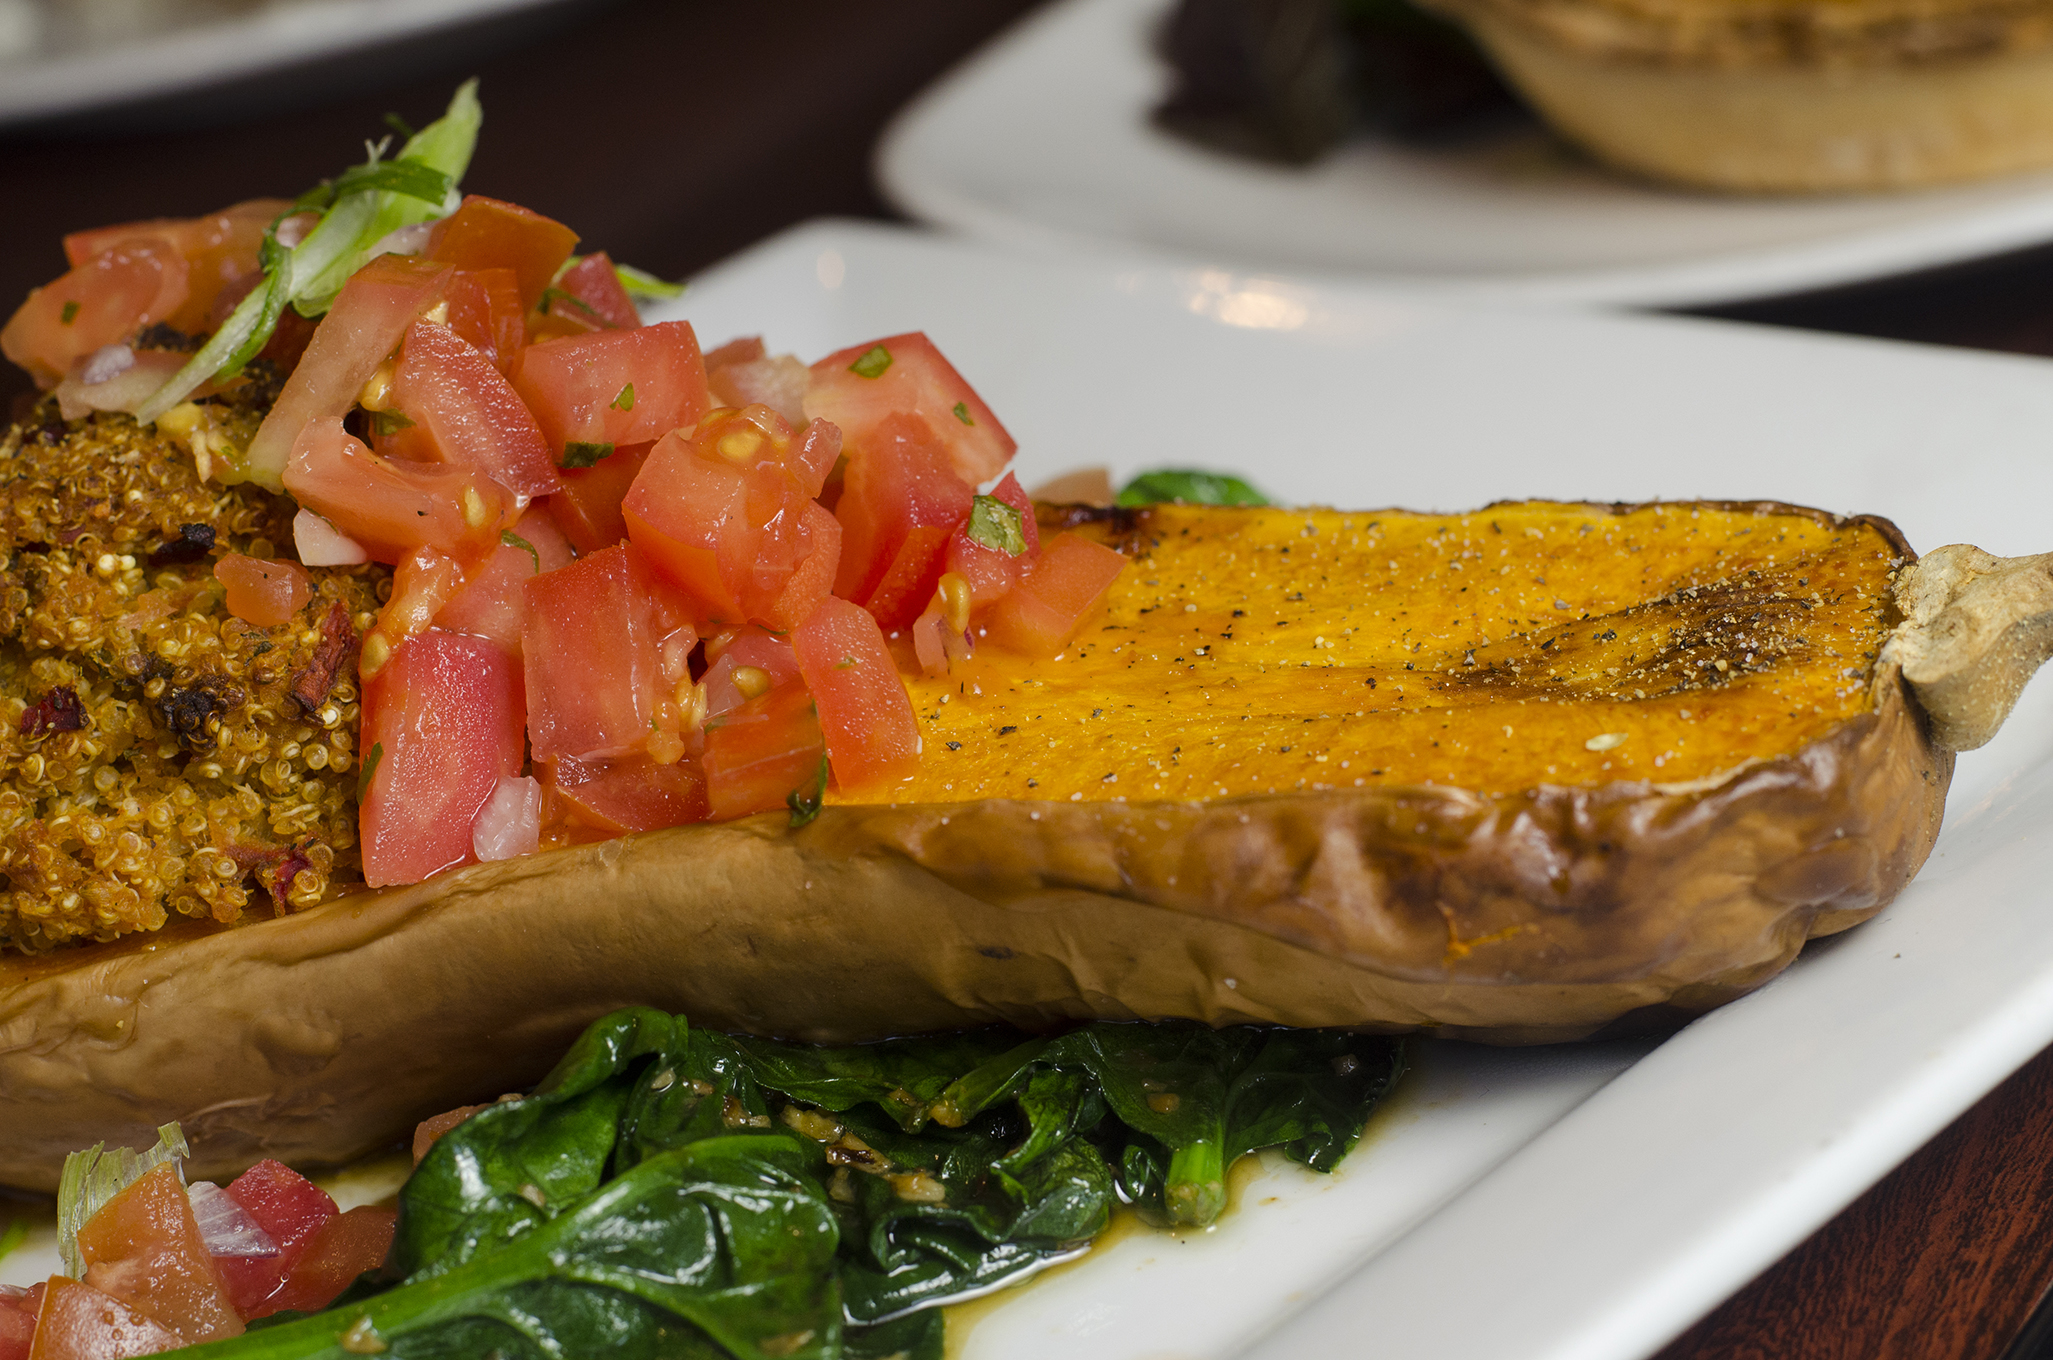 Quinoa stuffed butternut squash from Rino's Kitchen in Windsor, Ontario.